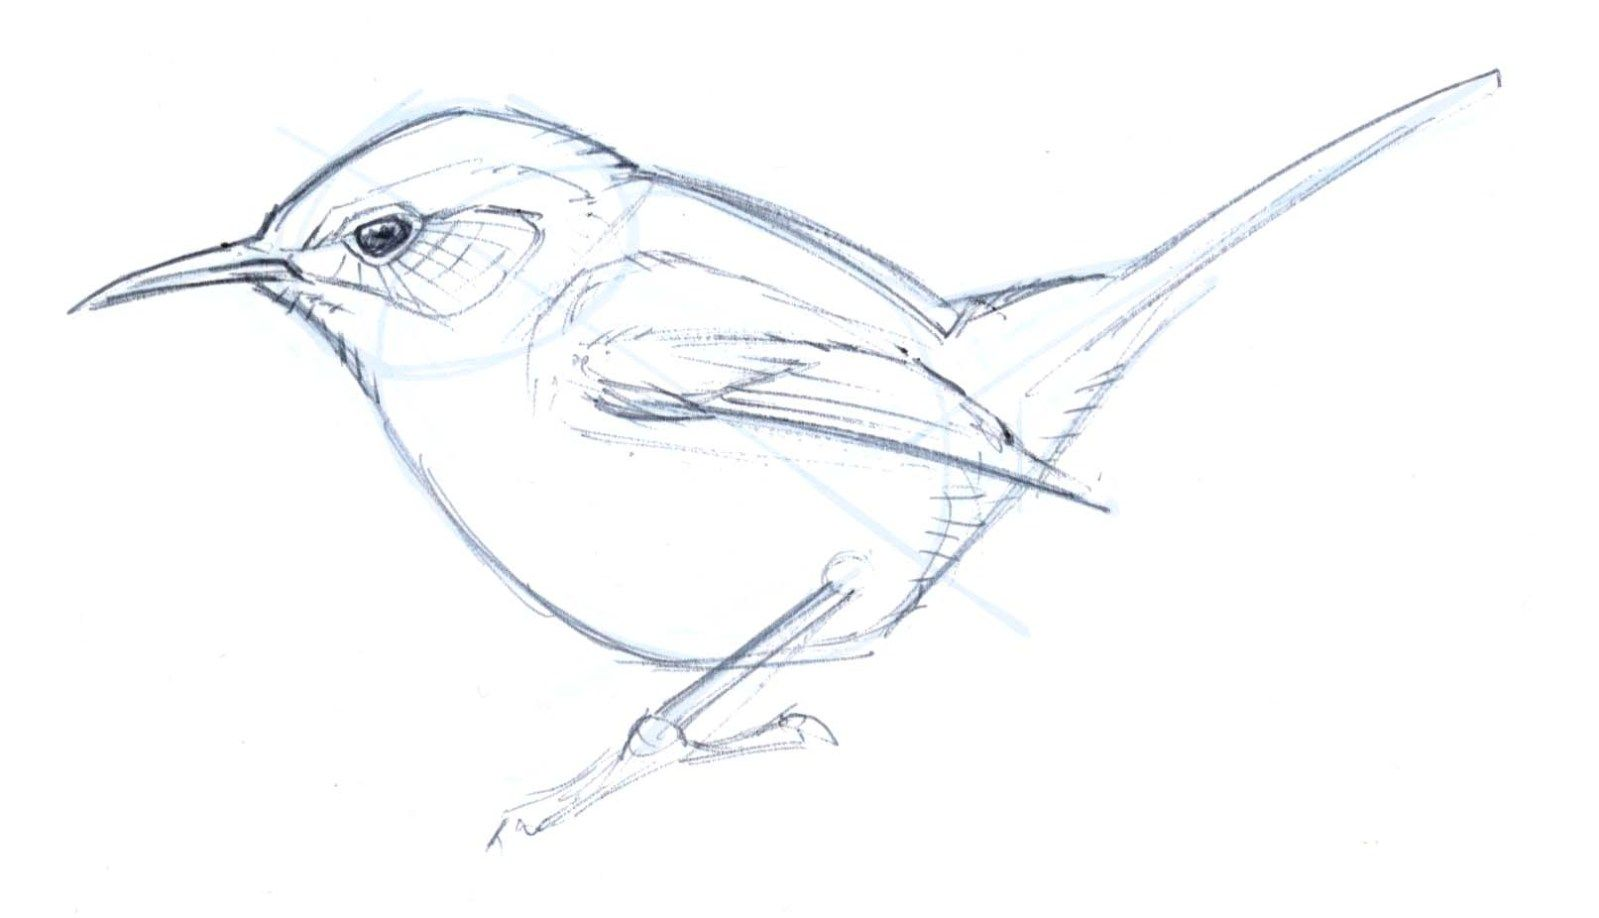 How To Draw A Bewick S Wren Step By Step Drawings Bird Sketch Bird Drawings